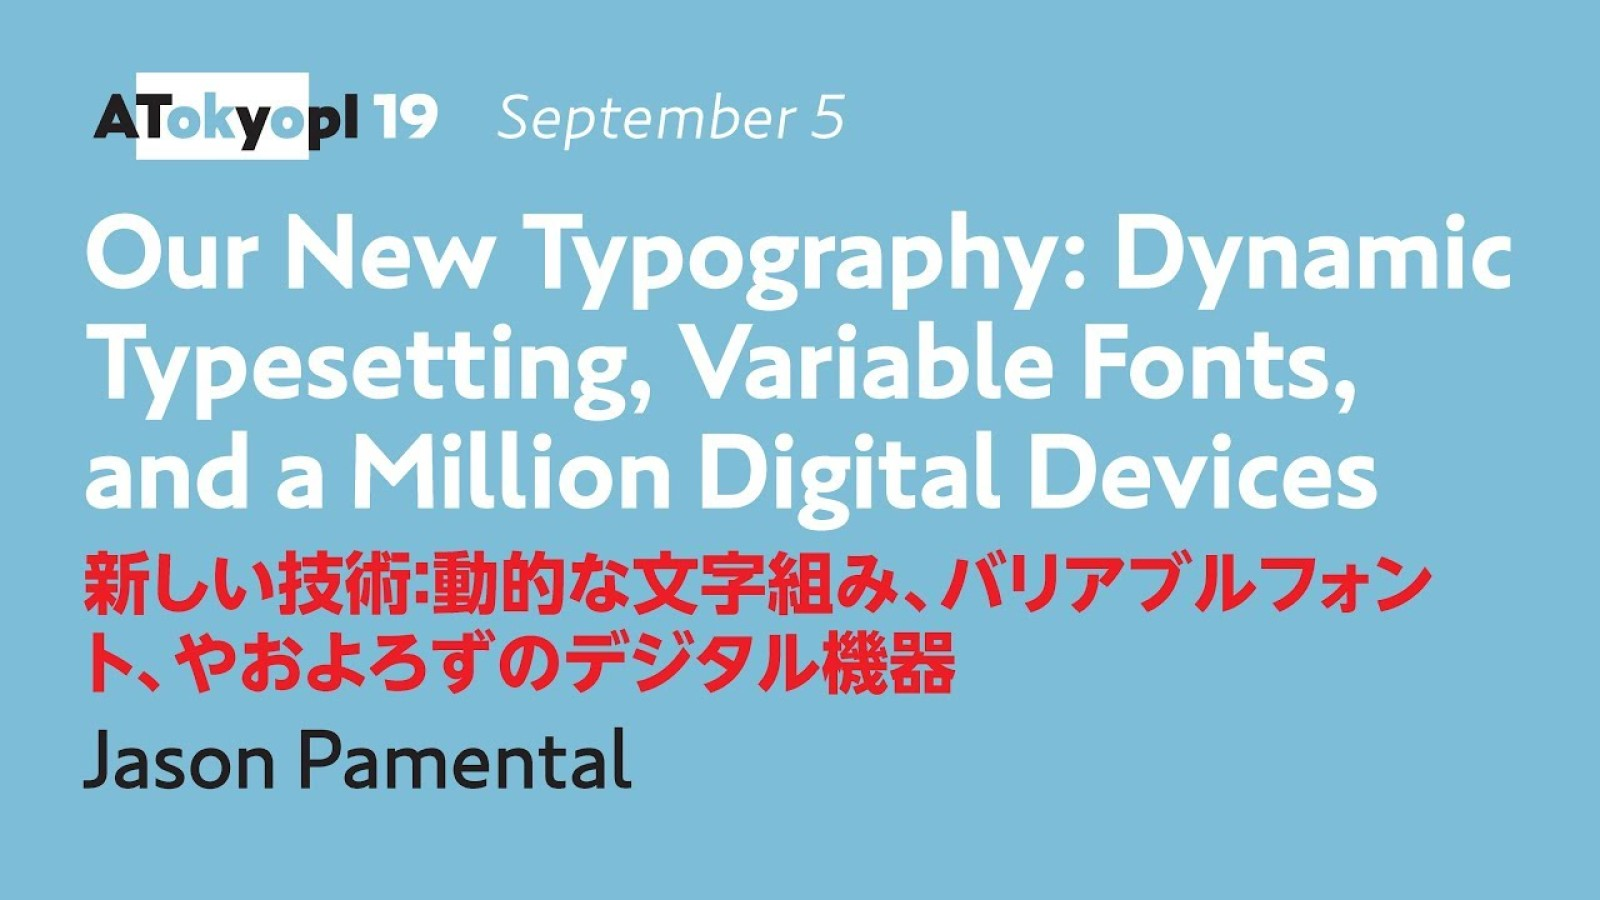 Our New Typography: dynamic typesetting, variable fonts, and a million digital devices